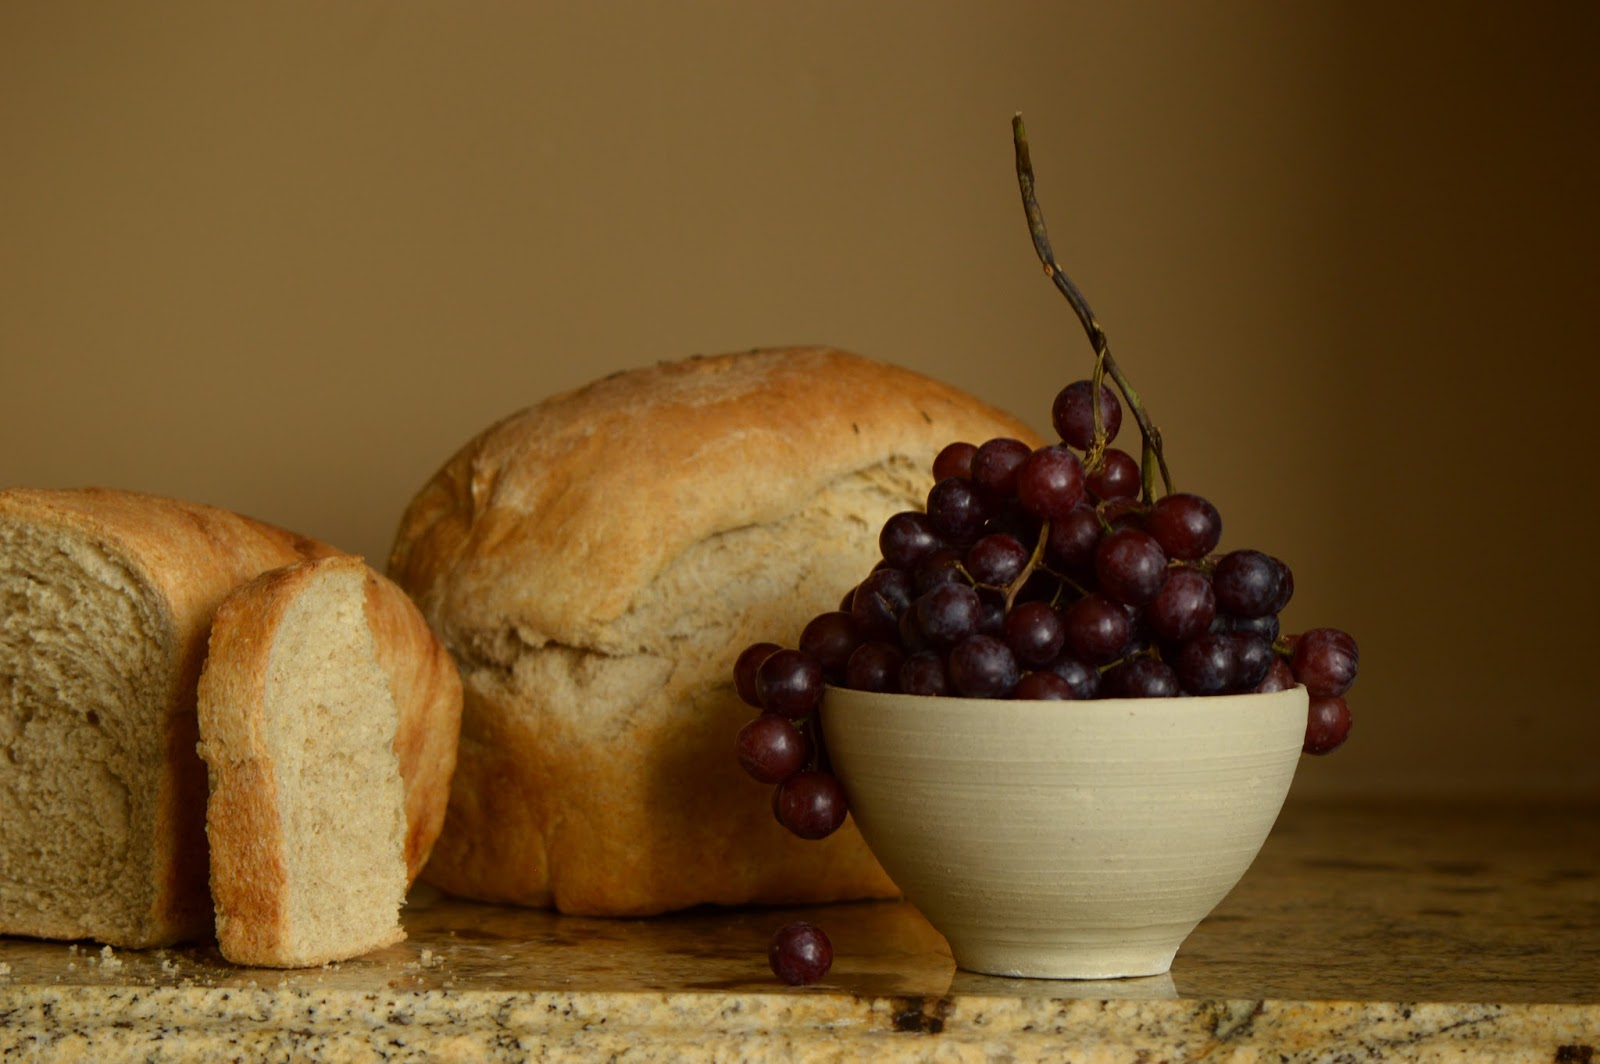 Still Life with Grapes and Bread, Colour, photography, amy myers